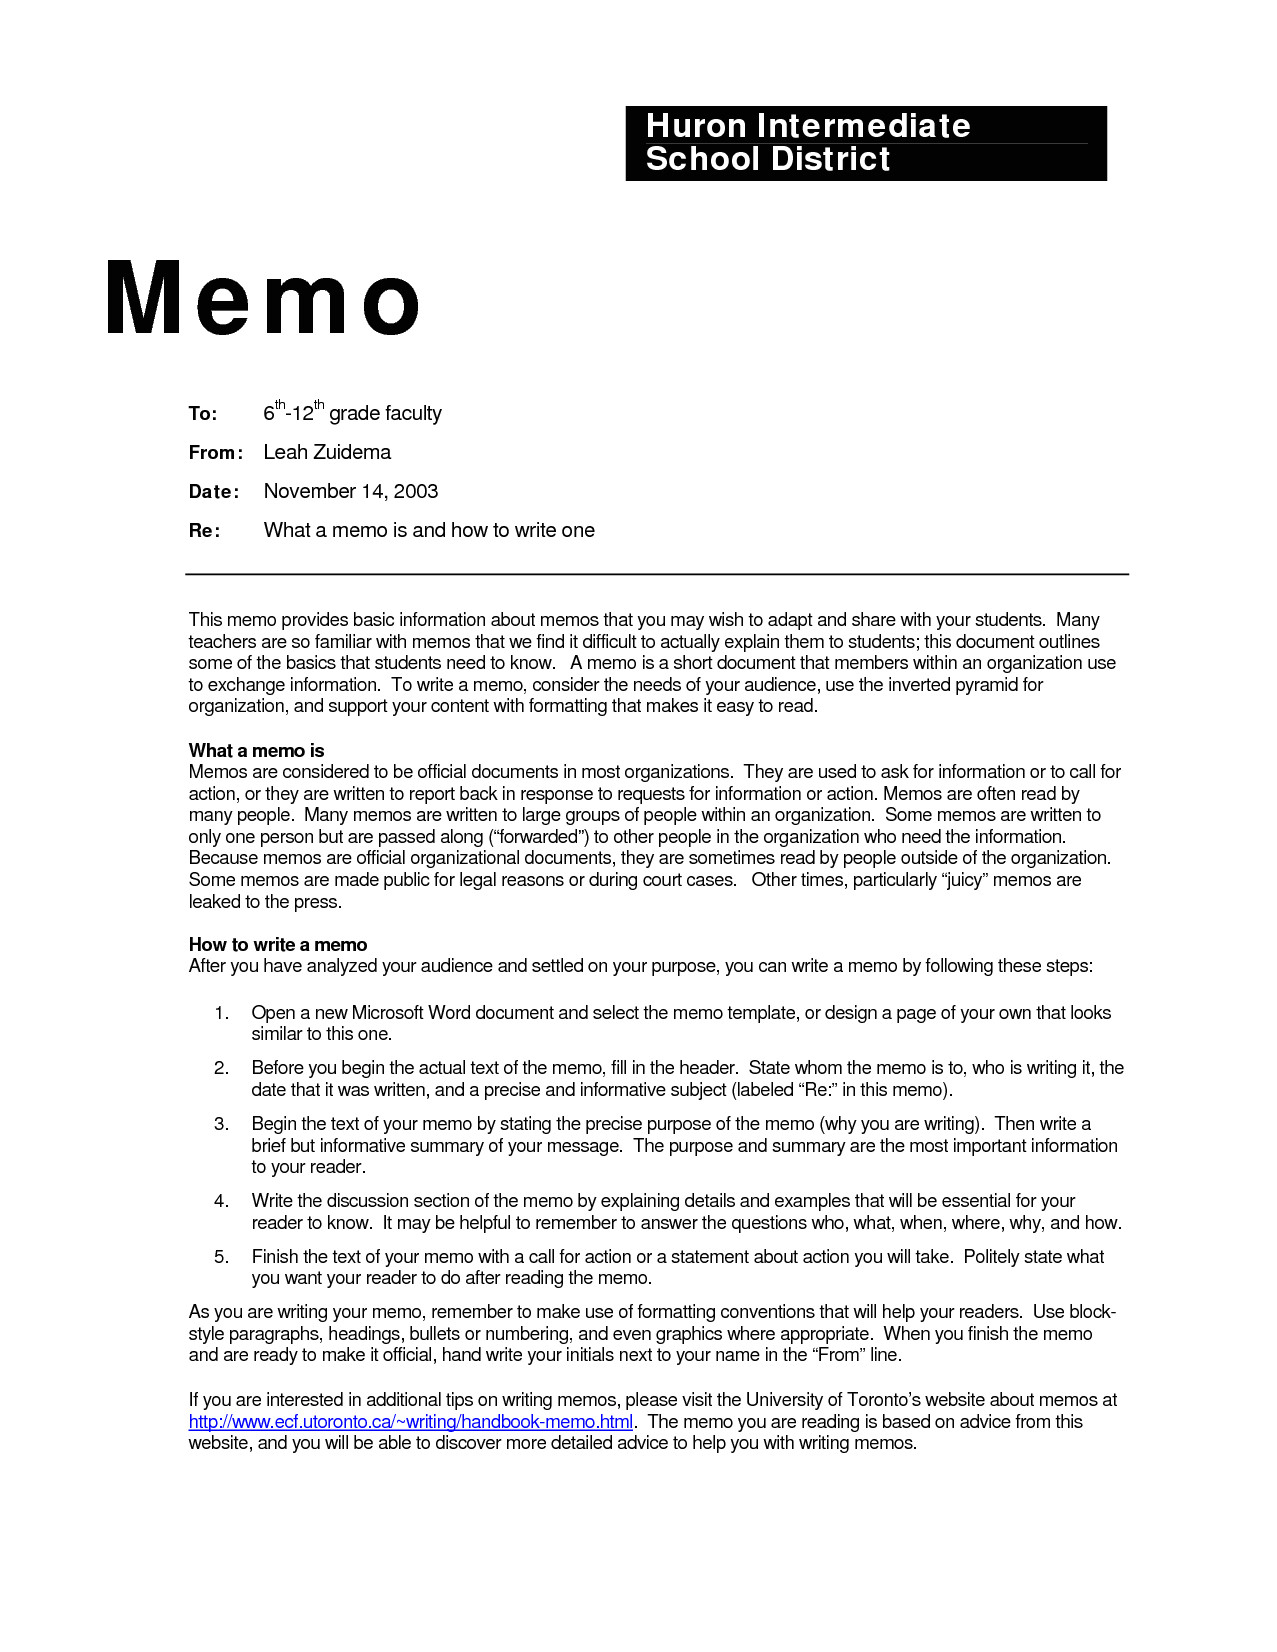 Teacher Memo Template Business Memo Examples Inter Office Sample Example